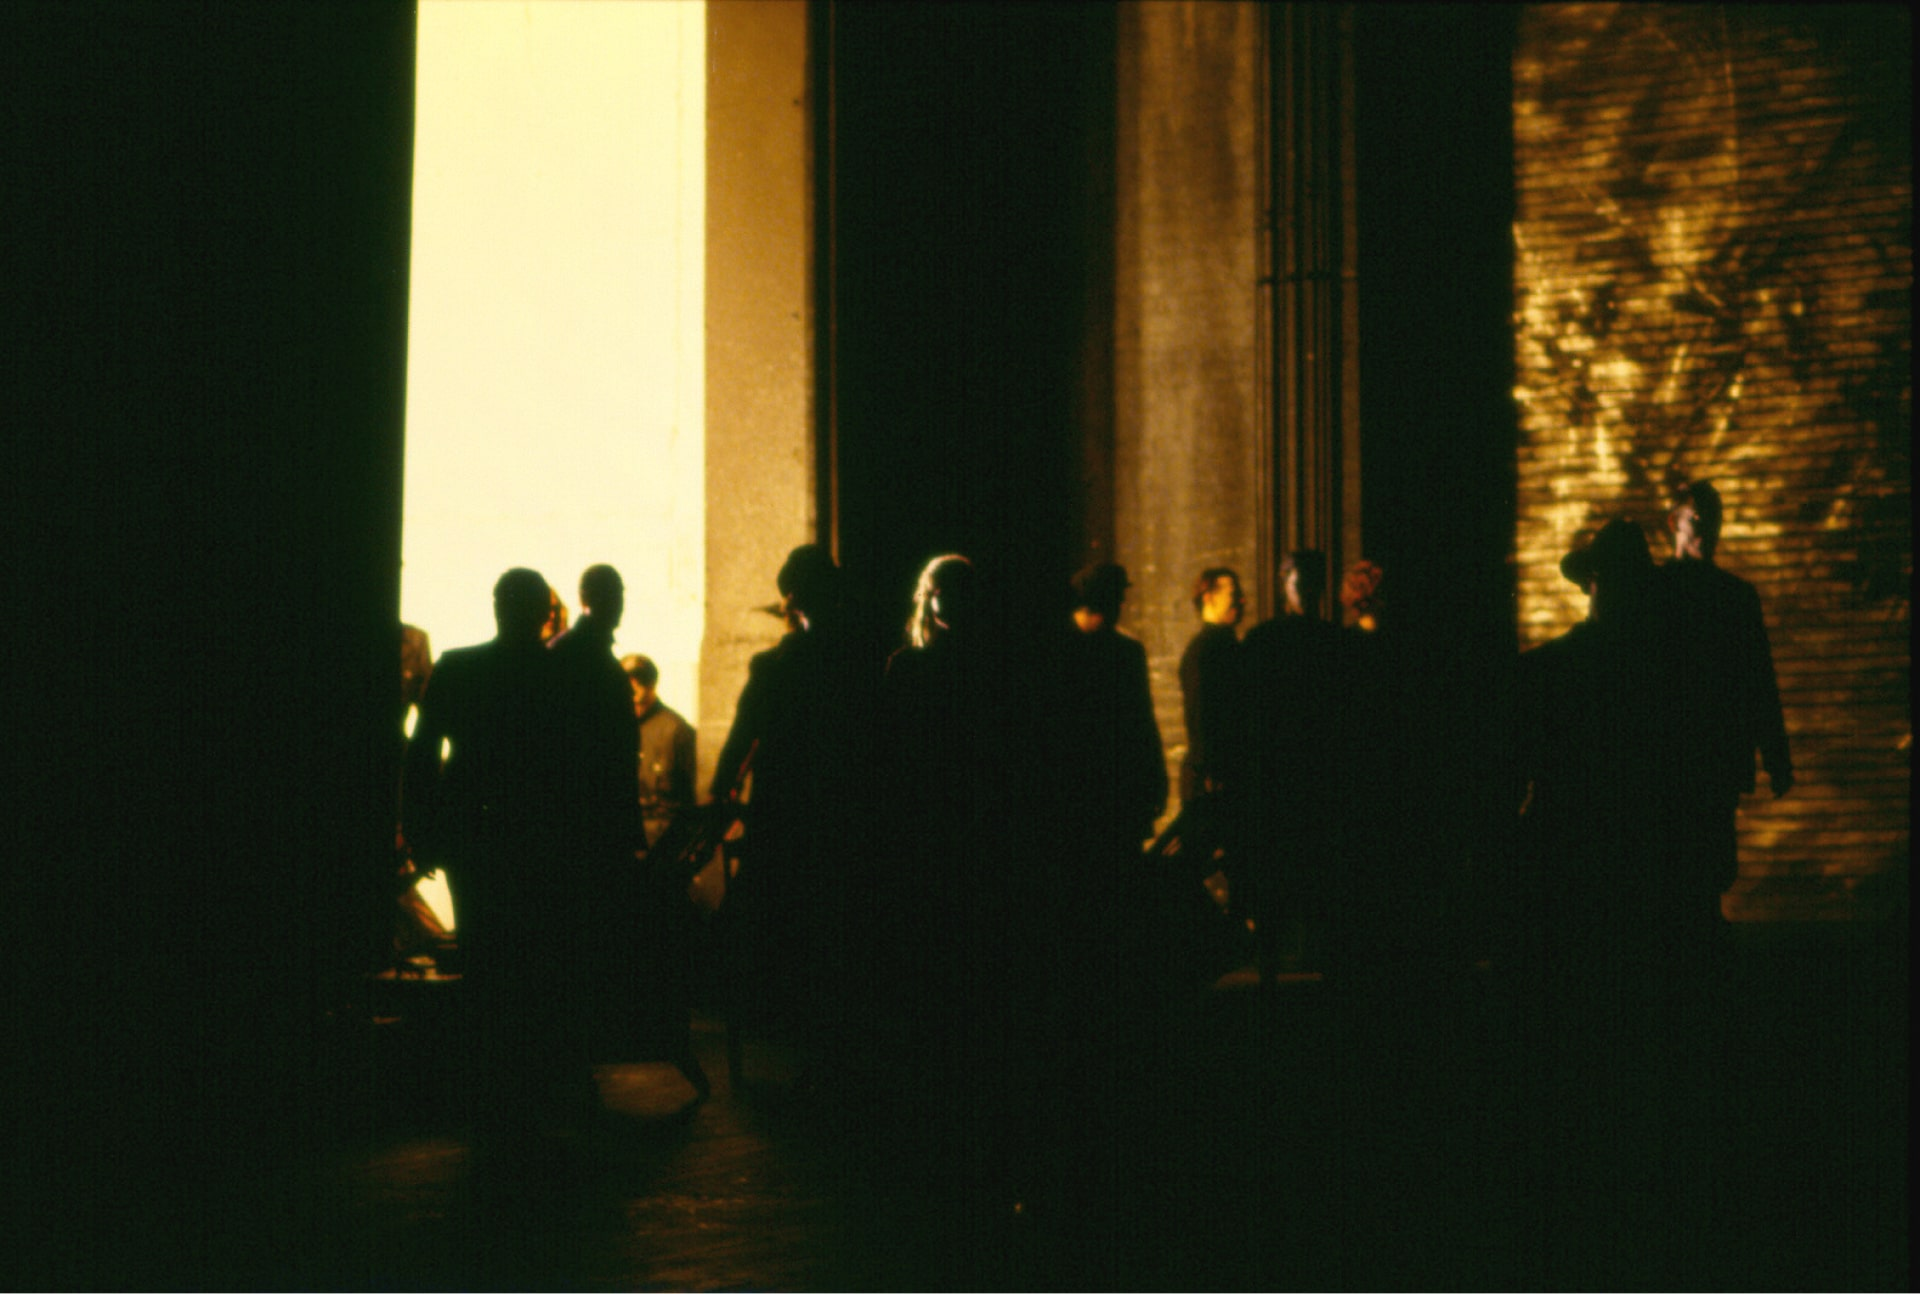 Crowd scattered on darkened stage lit by blinding light through tall open doorway.